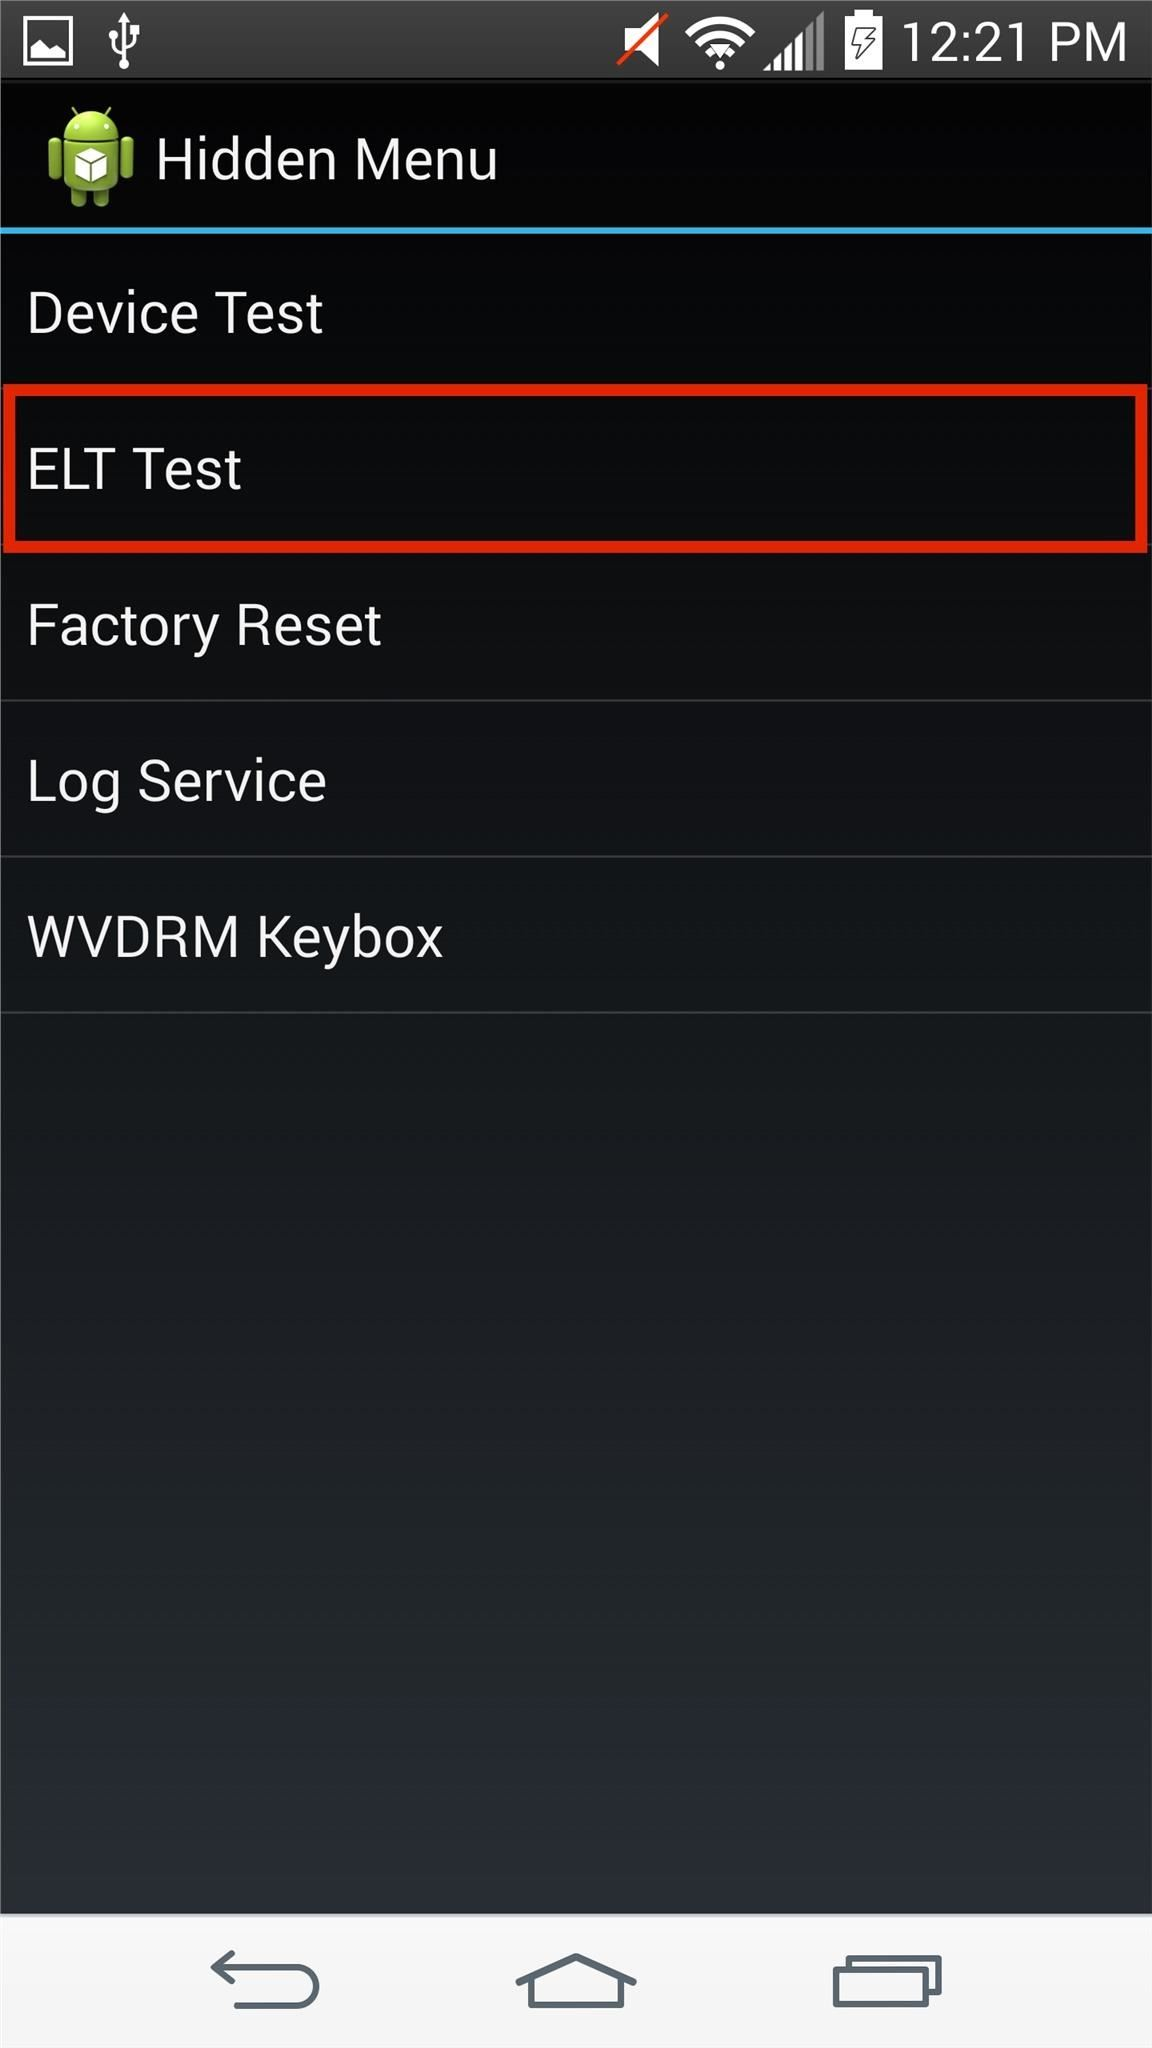 elt manual test for android